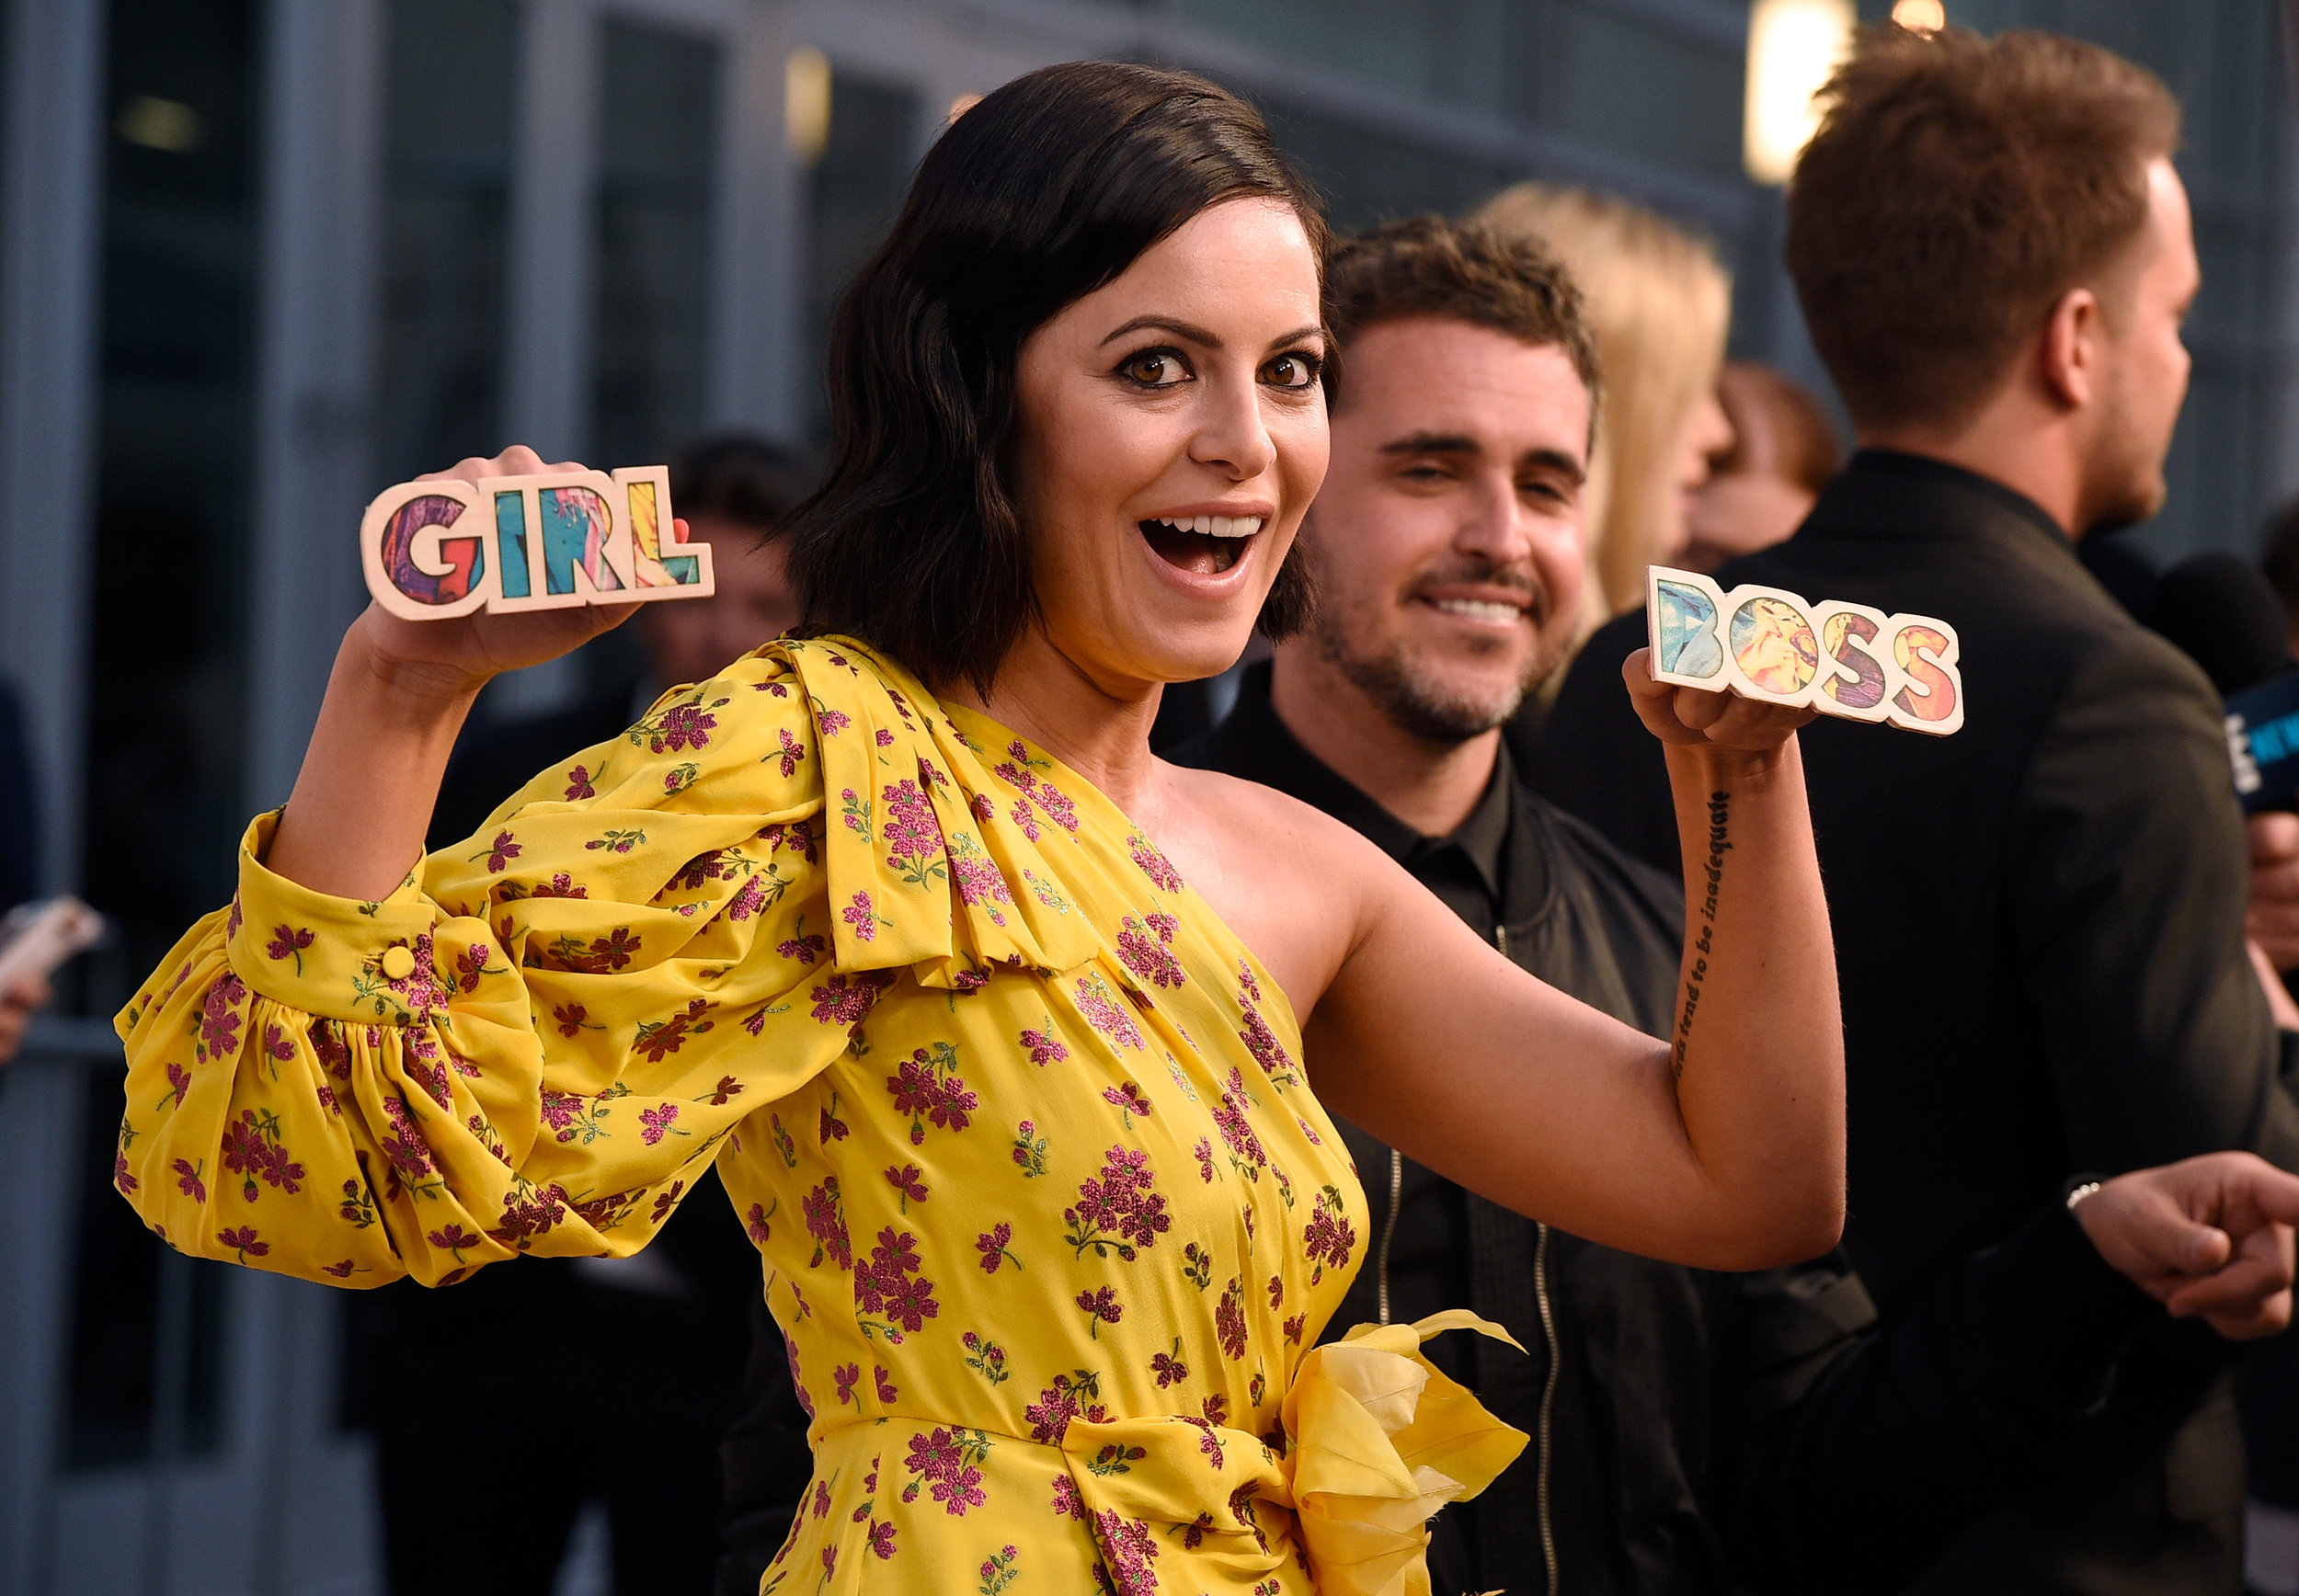 The original #girlboss, Sophia Amoruso, at the  Girlboss  Netflix premiere. Image via Bustle.